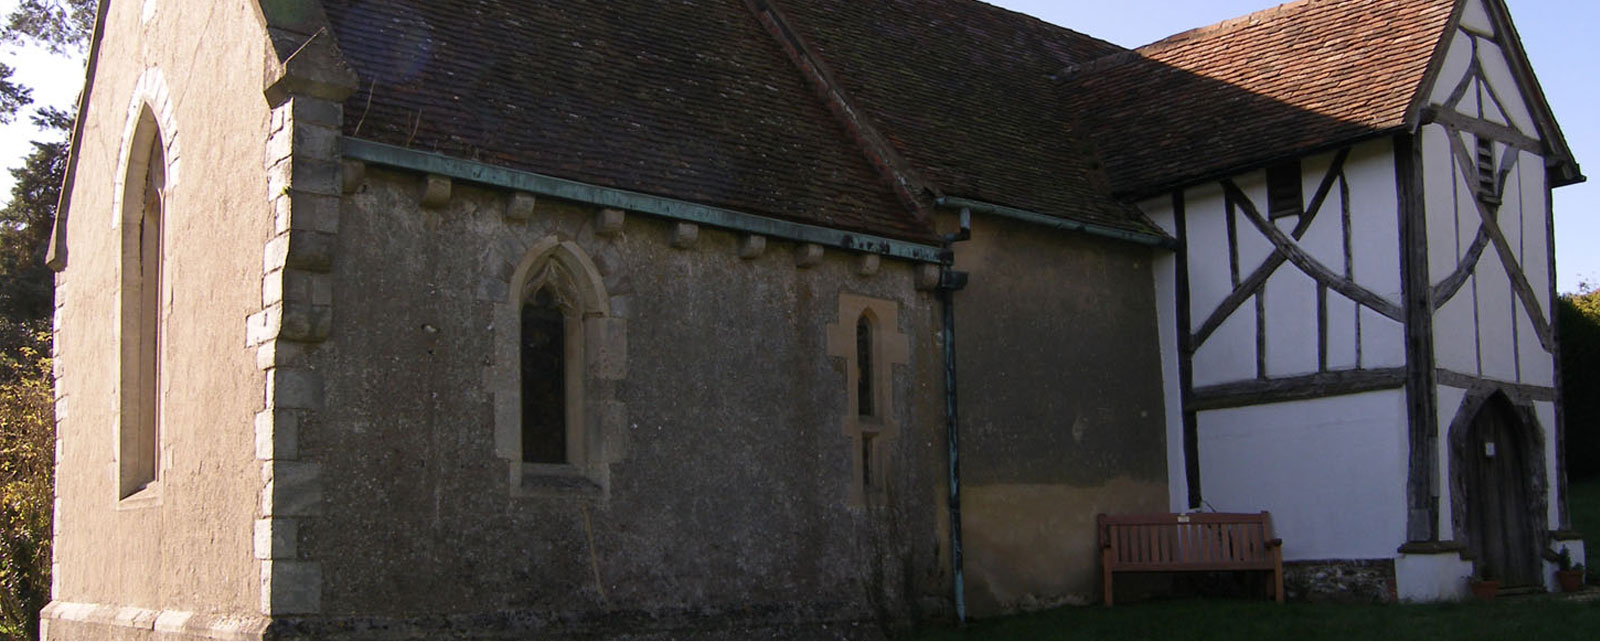 Little Hampden and St Mary's Ballinger**Churches in the Parish